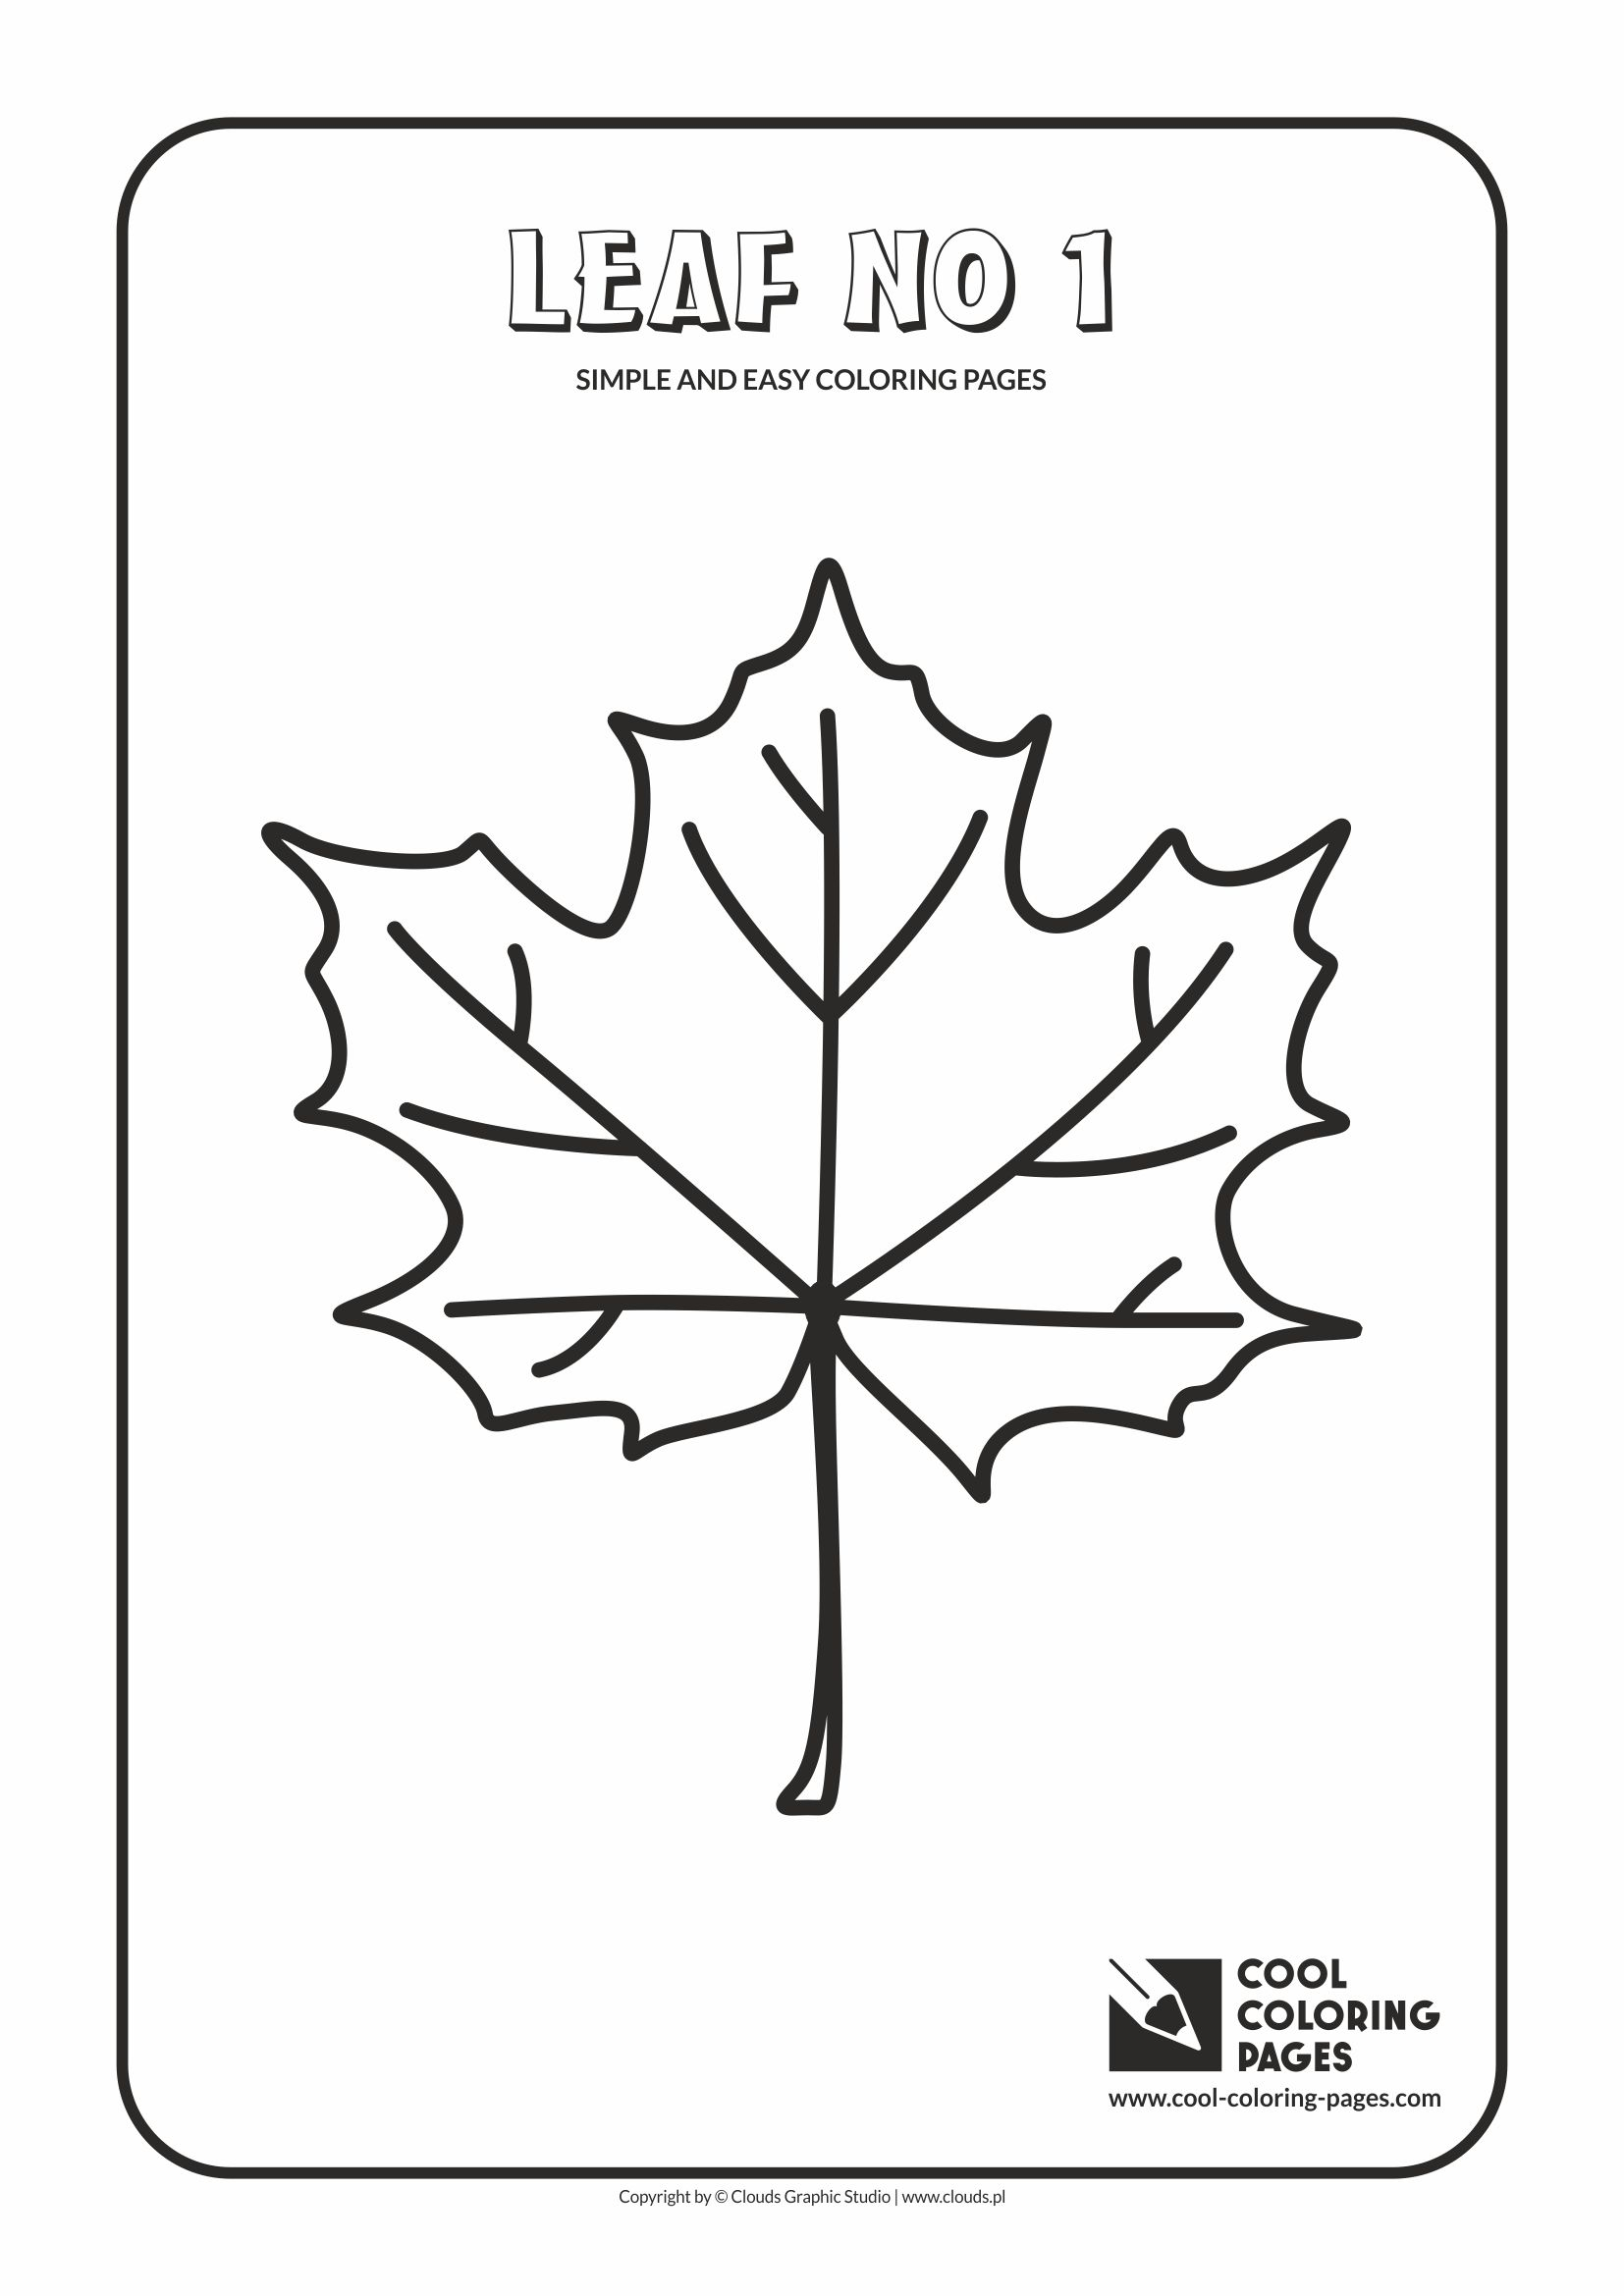 Simple and easy coloring pages for toddlers - Leaf no 1